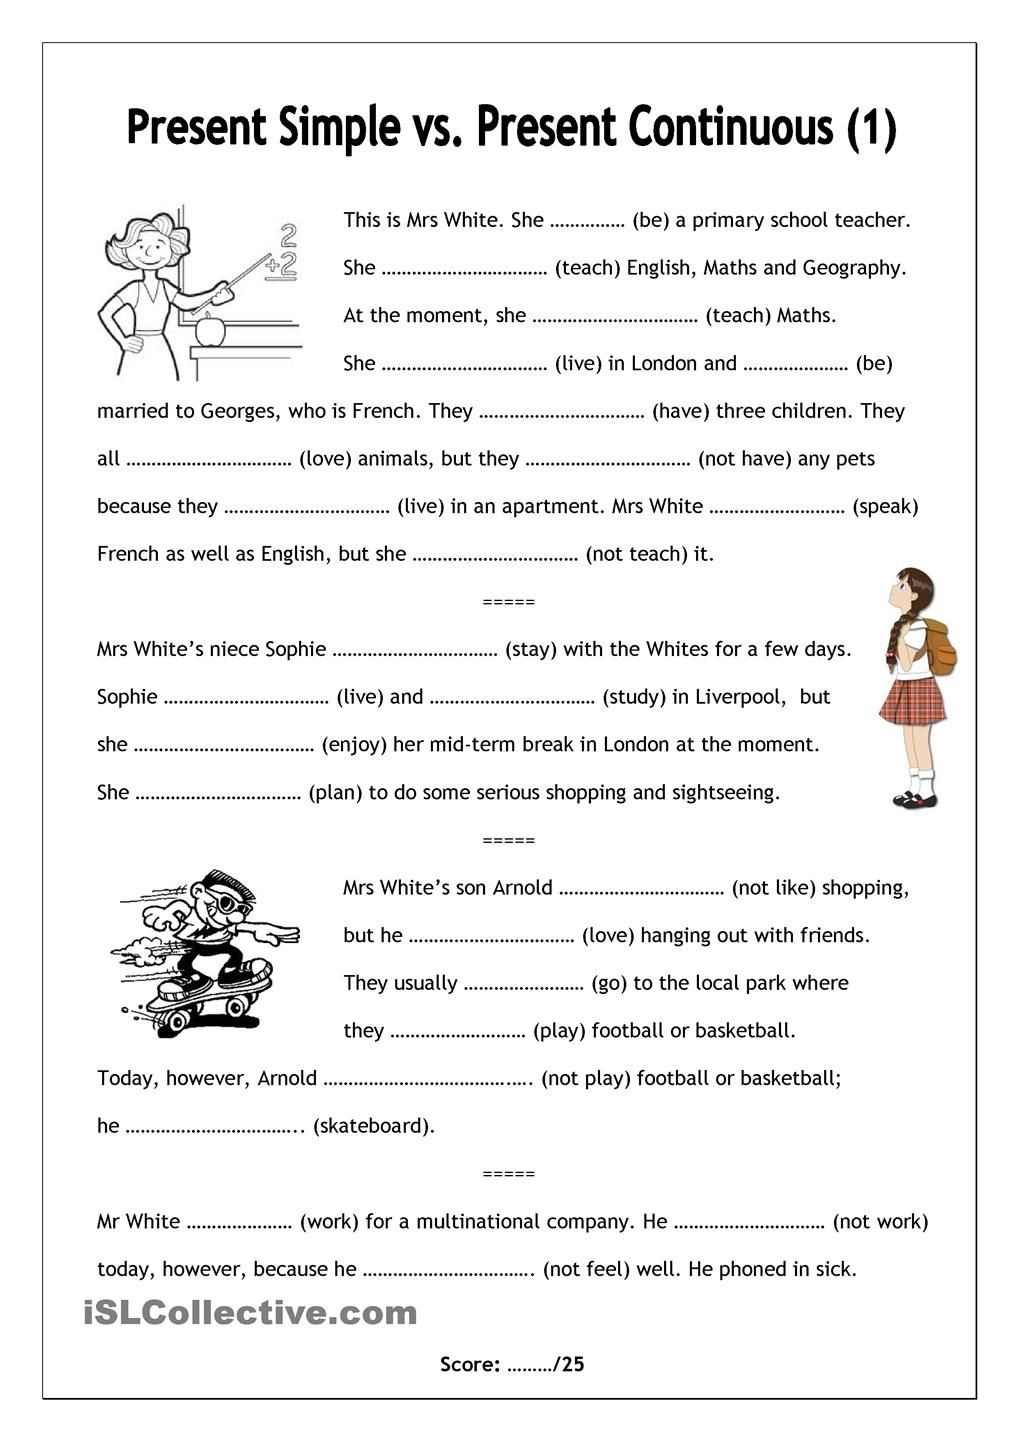 No Frills Worksheet For All Ages Present Simple Vs Present Continuous 1 Inglés Para Secundaria Educacion Ingles Ejercicios De Ingles